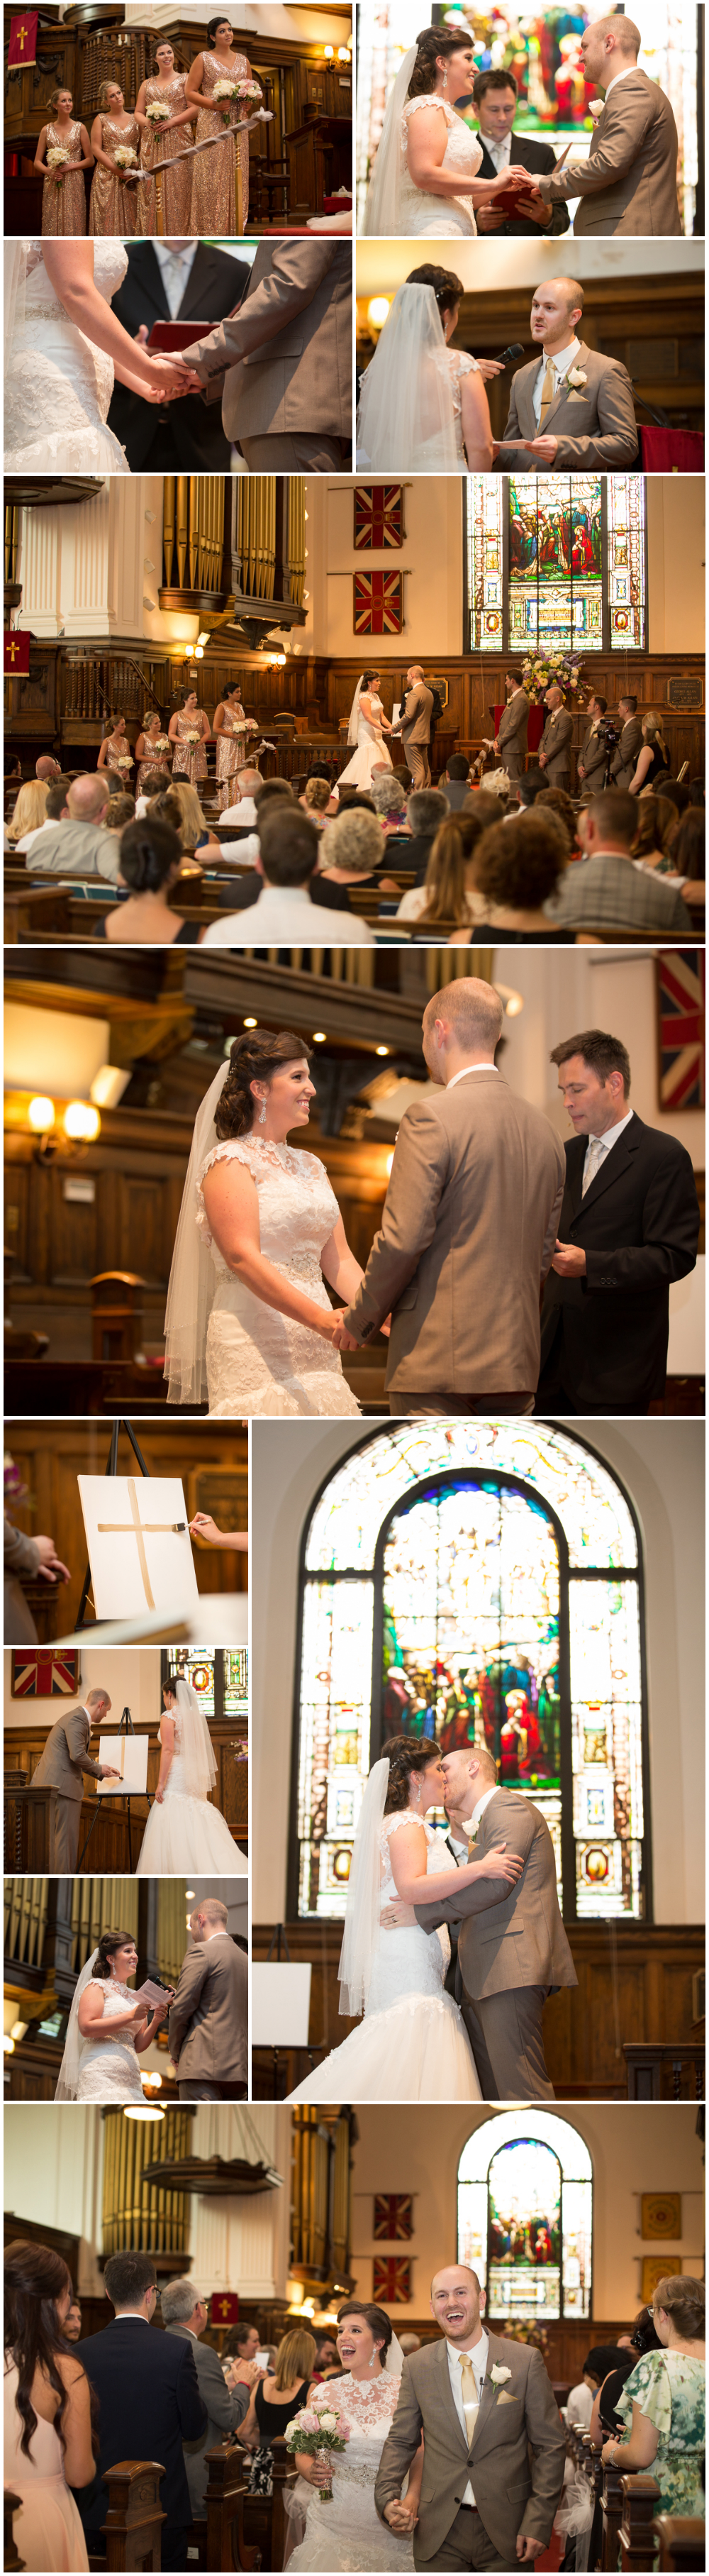 Liuna_Station_Hamilton_Wedding_Photo_JJMedia-7